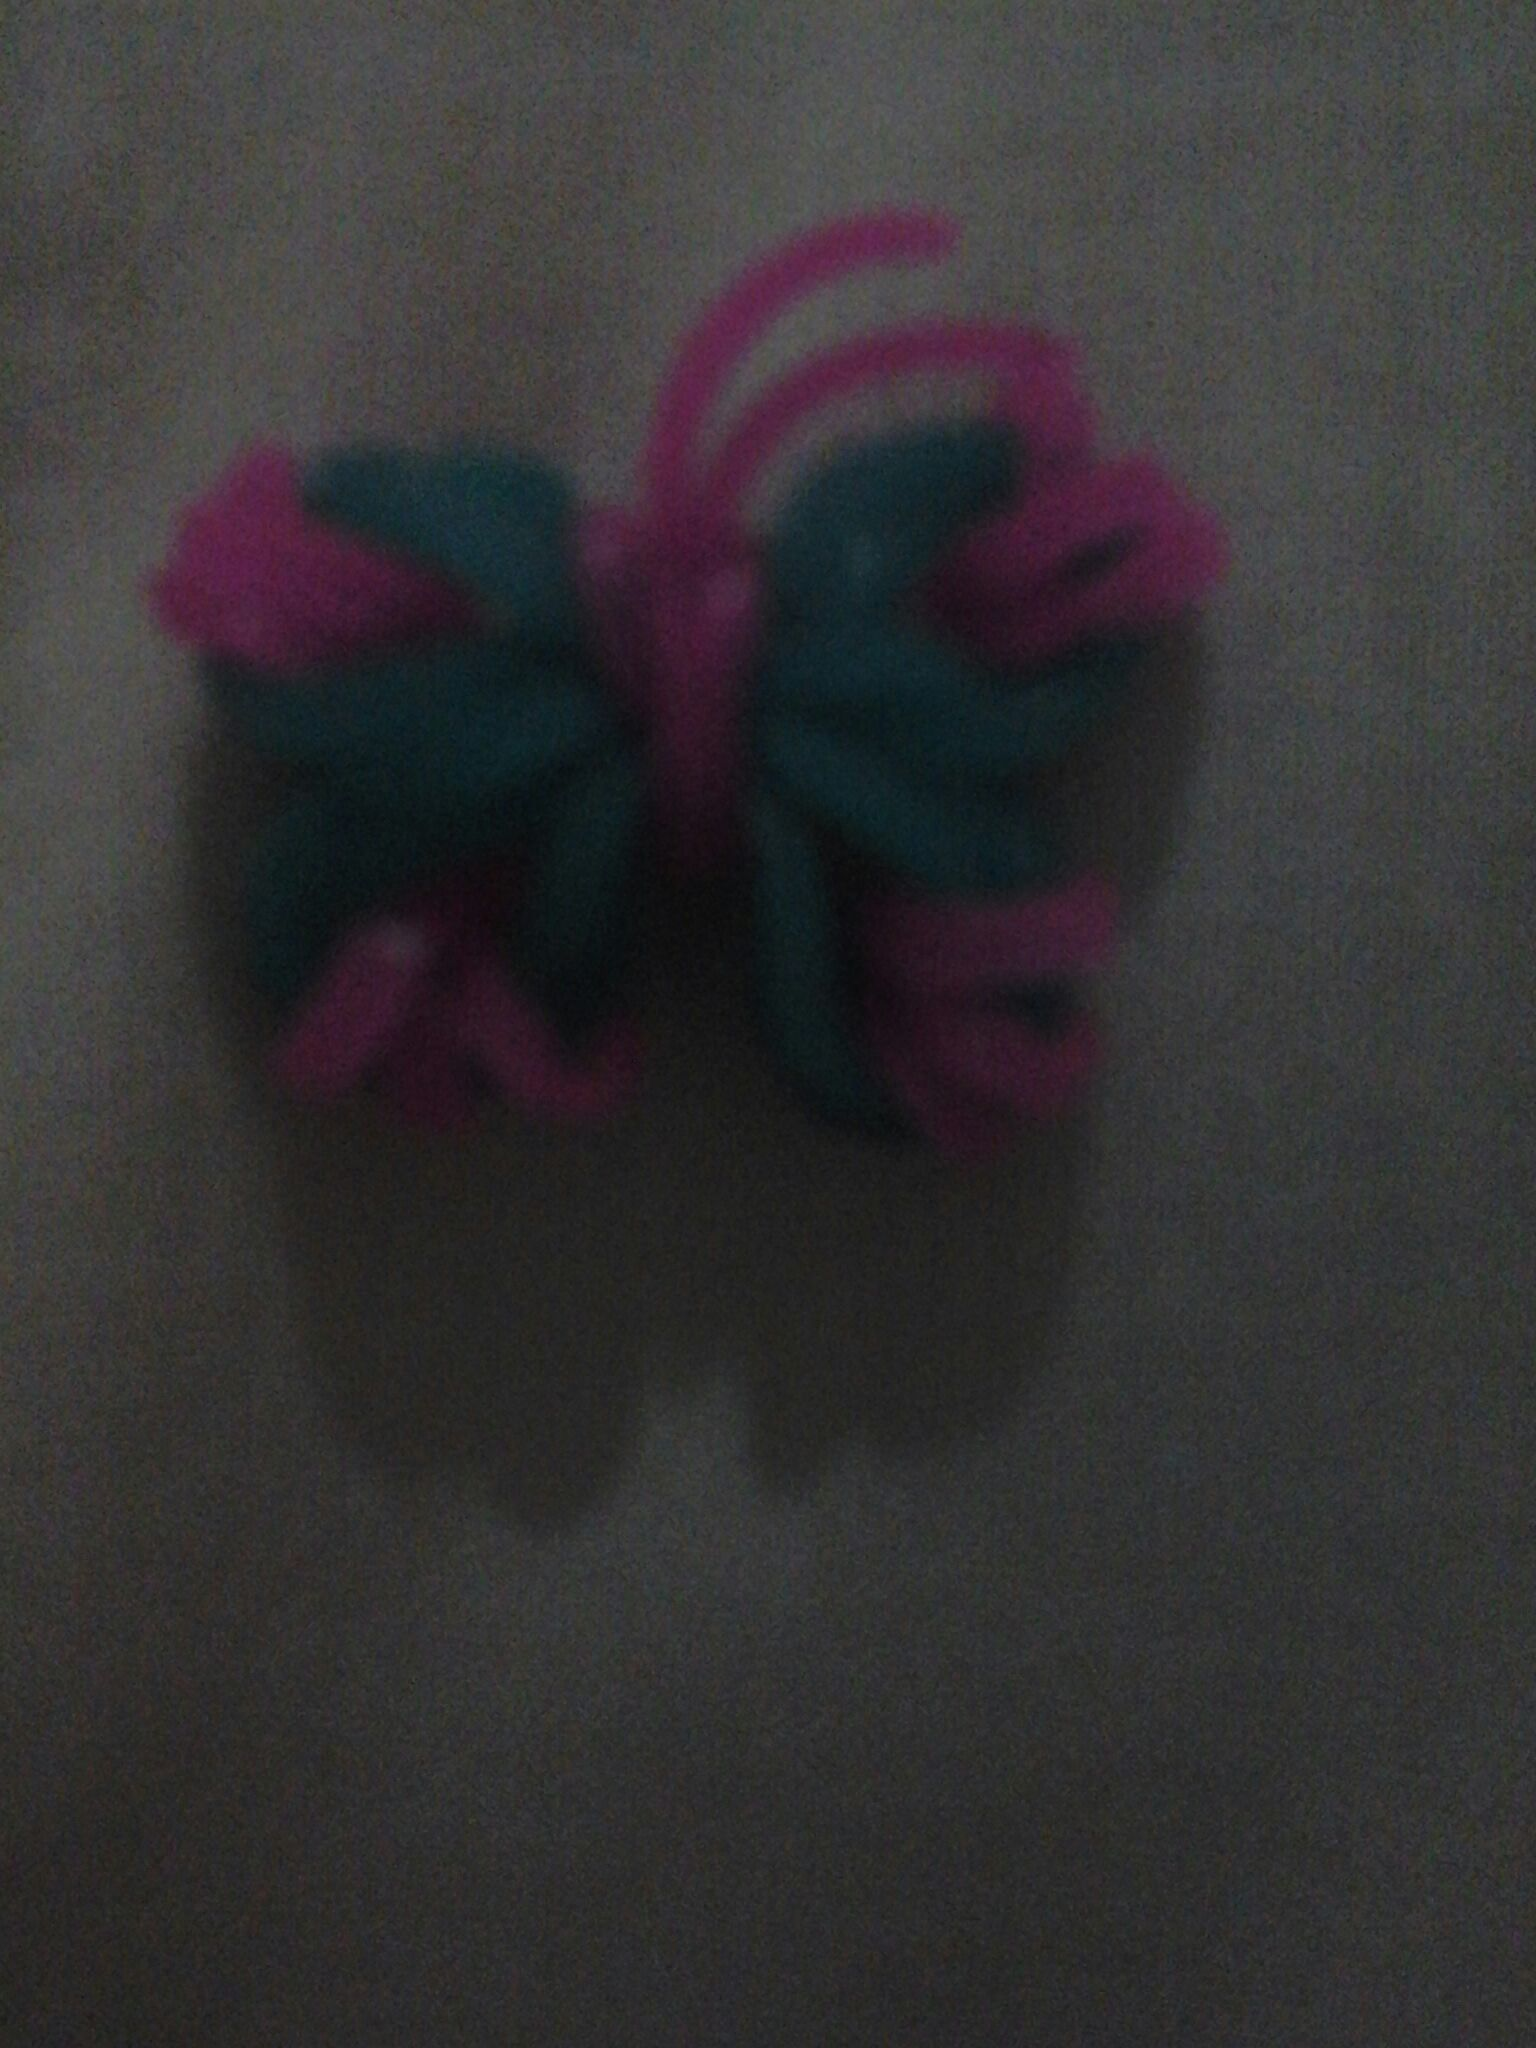 Loomless butterfly